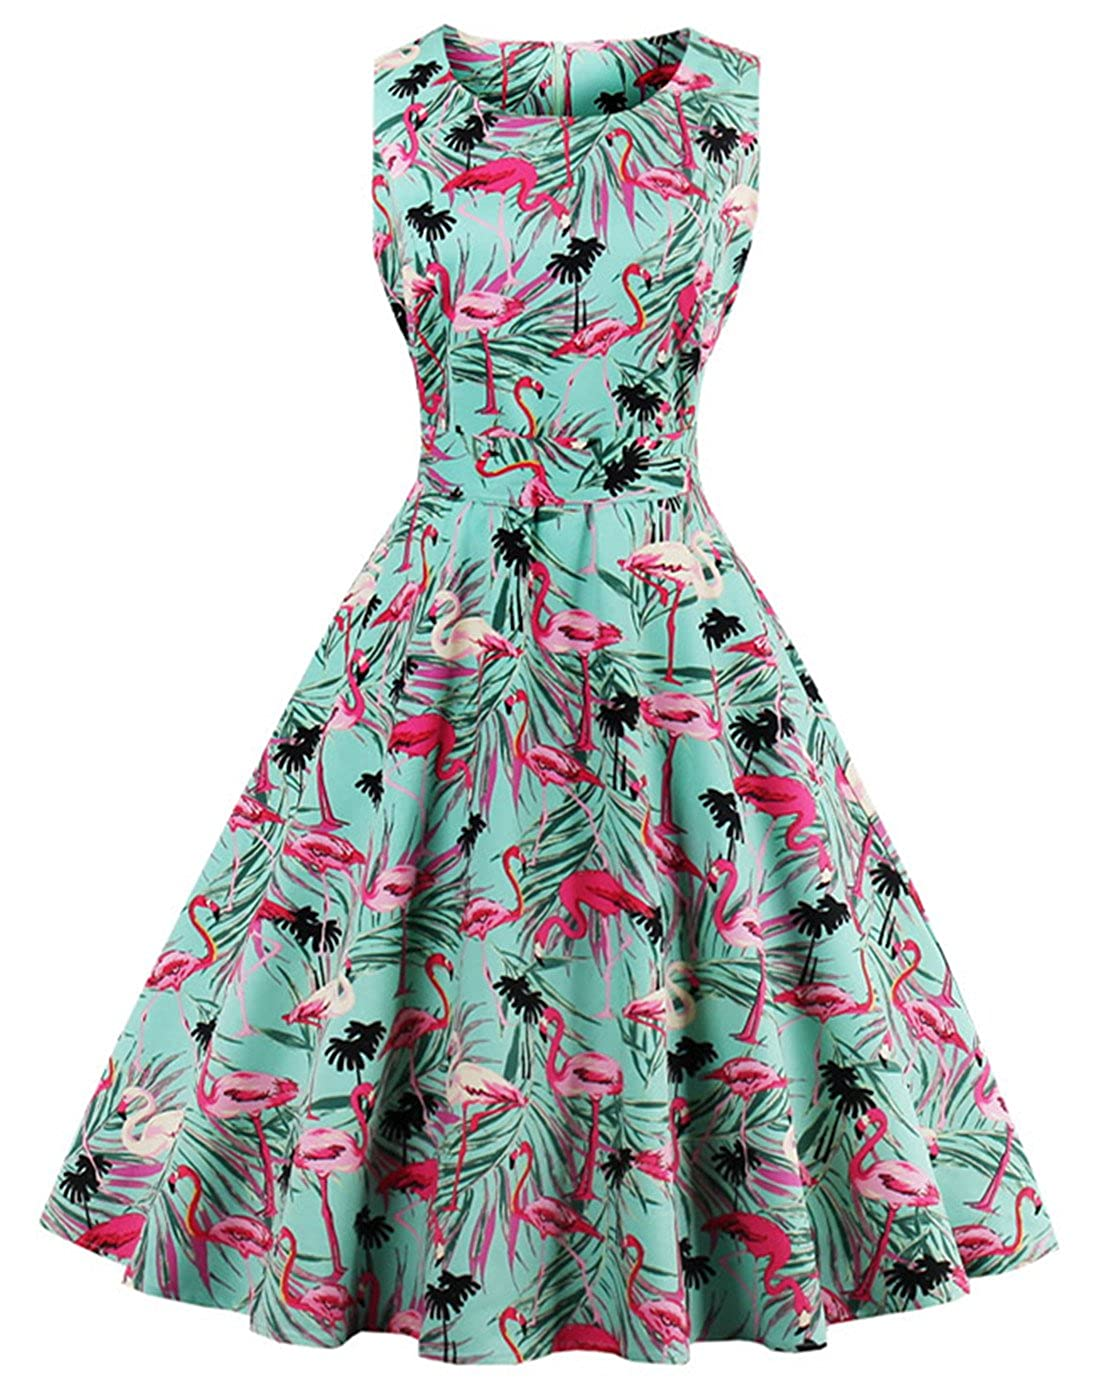 1950s Dresses, 50s Dresses | 1950s Style Dresses Wellwits Womens Tropical Leaf Flamingo Hepburn 1950s Vintage Swing Dress $24.98 AT vintagedancer.com